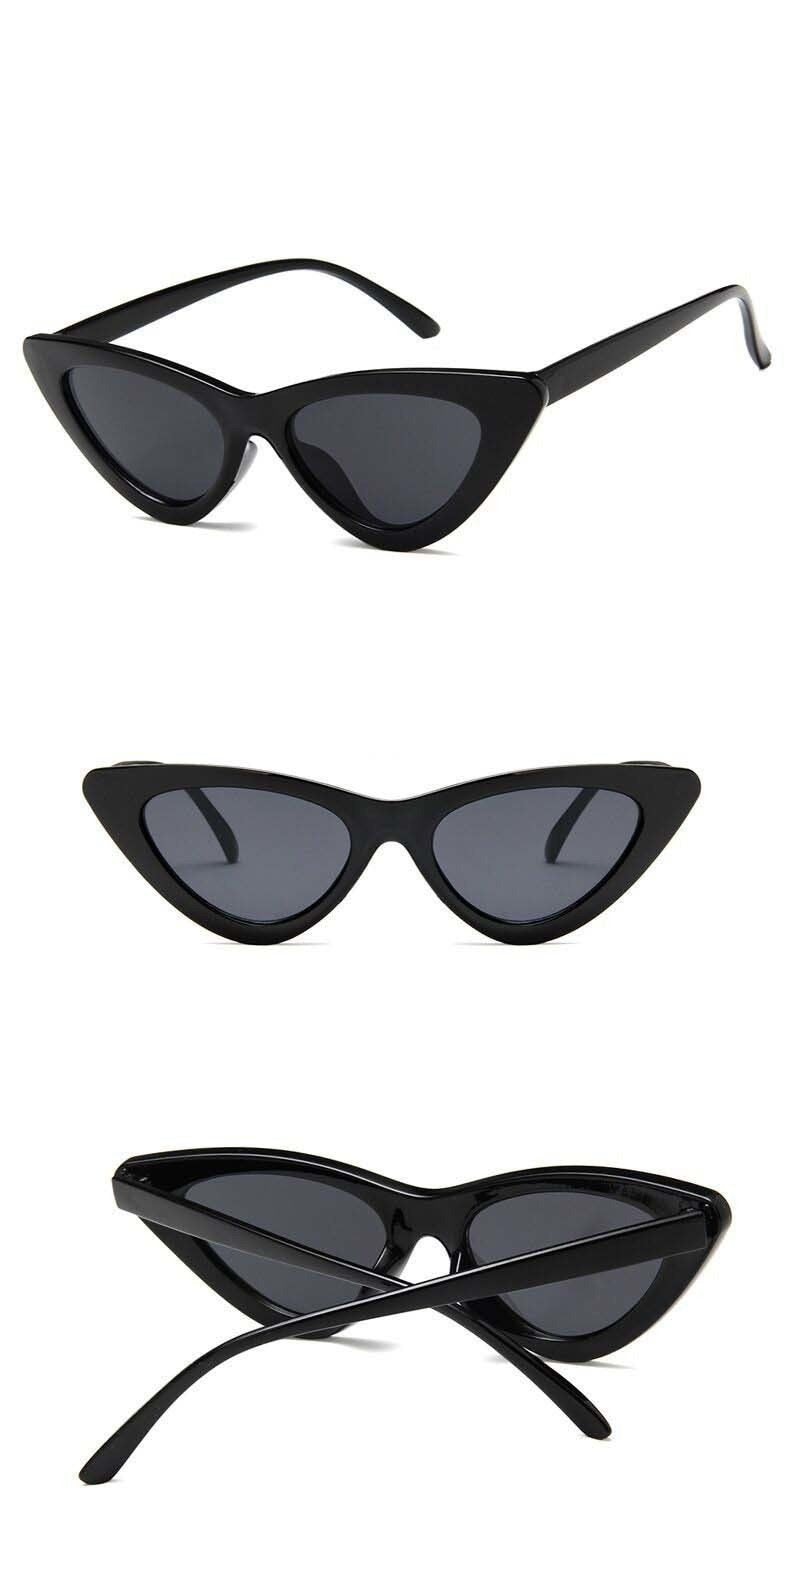 New Retro Fashion Sunglasses Women Brand Designer Vintage Cat Eye Black